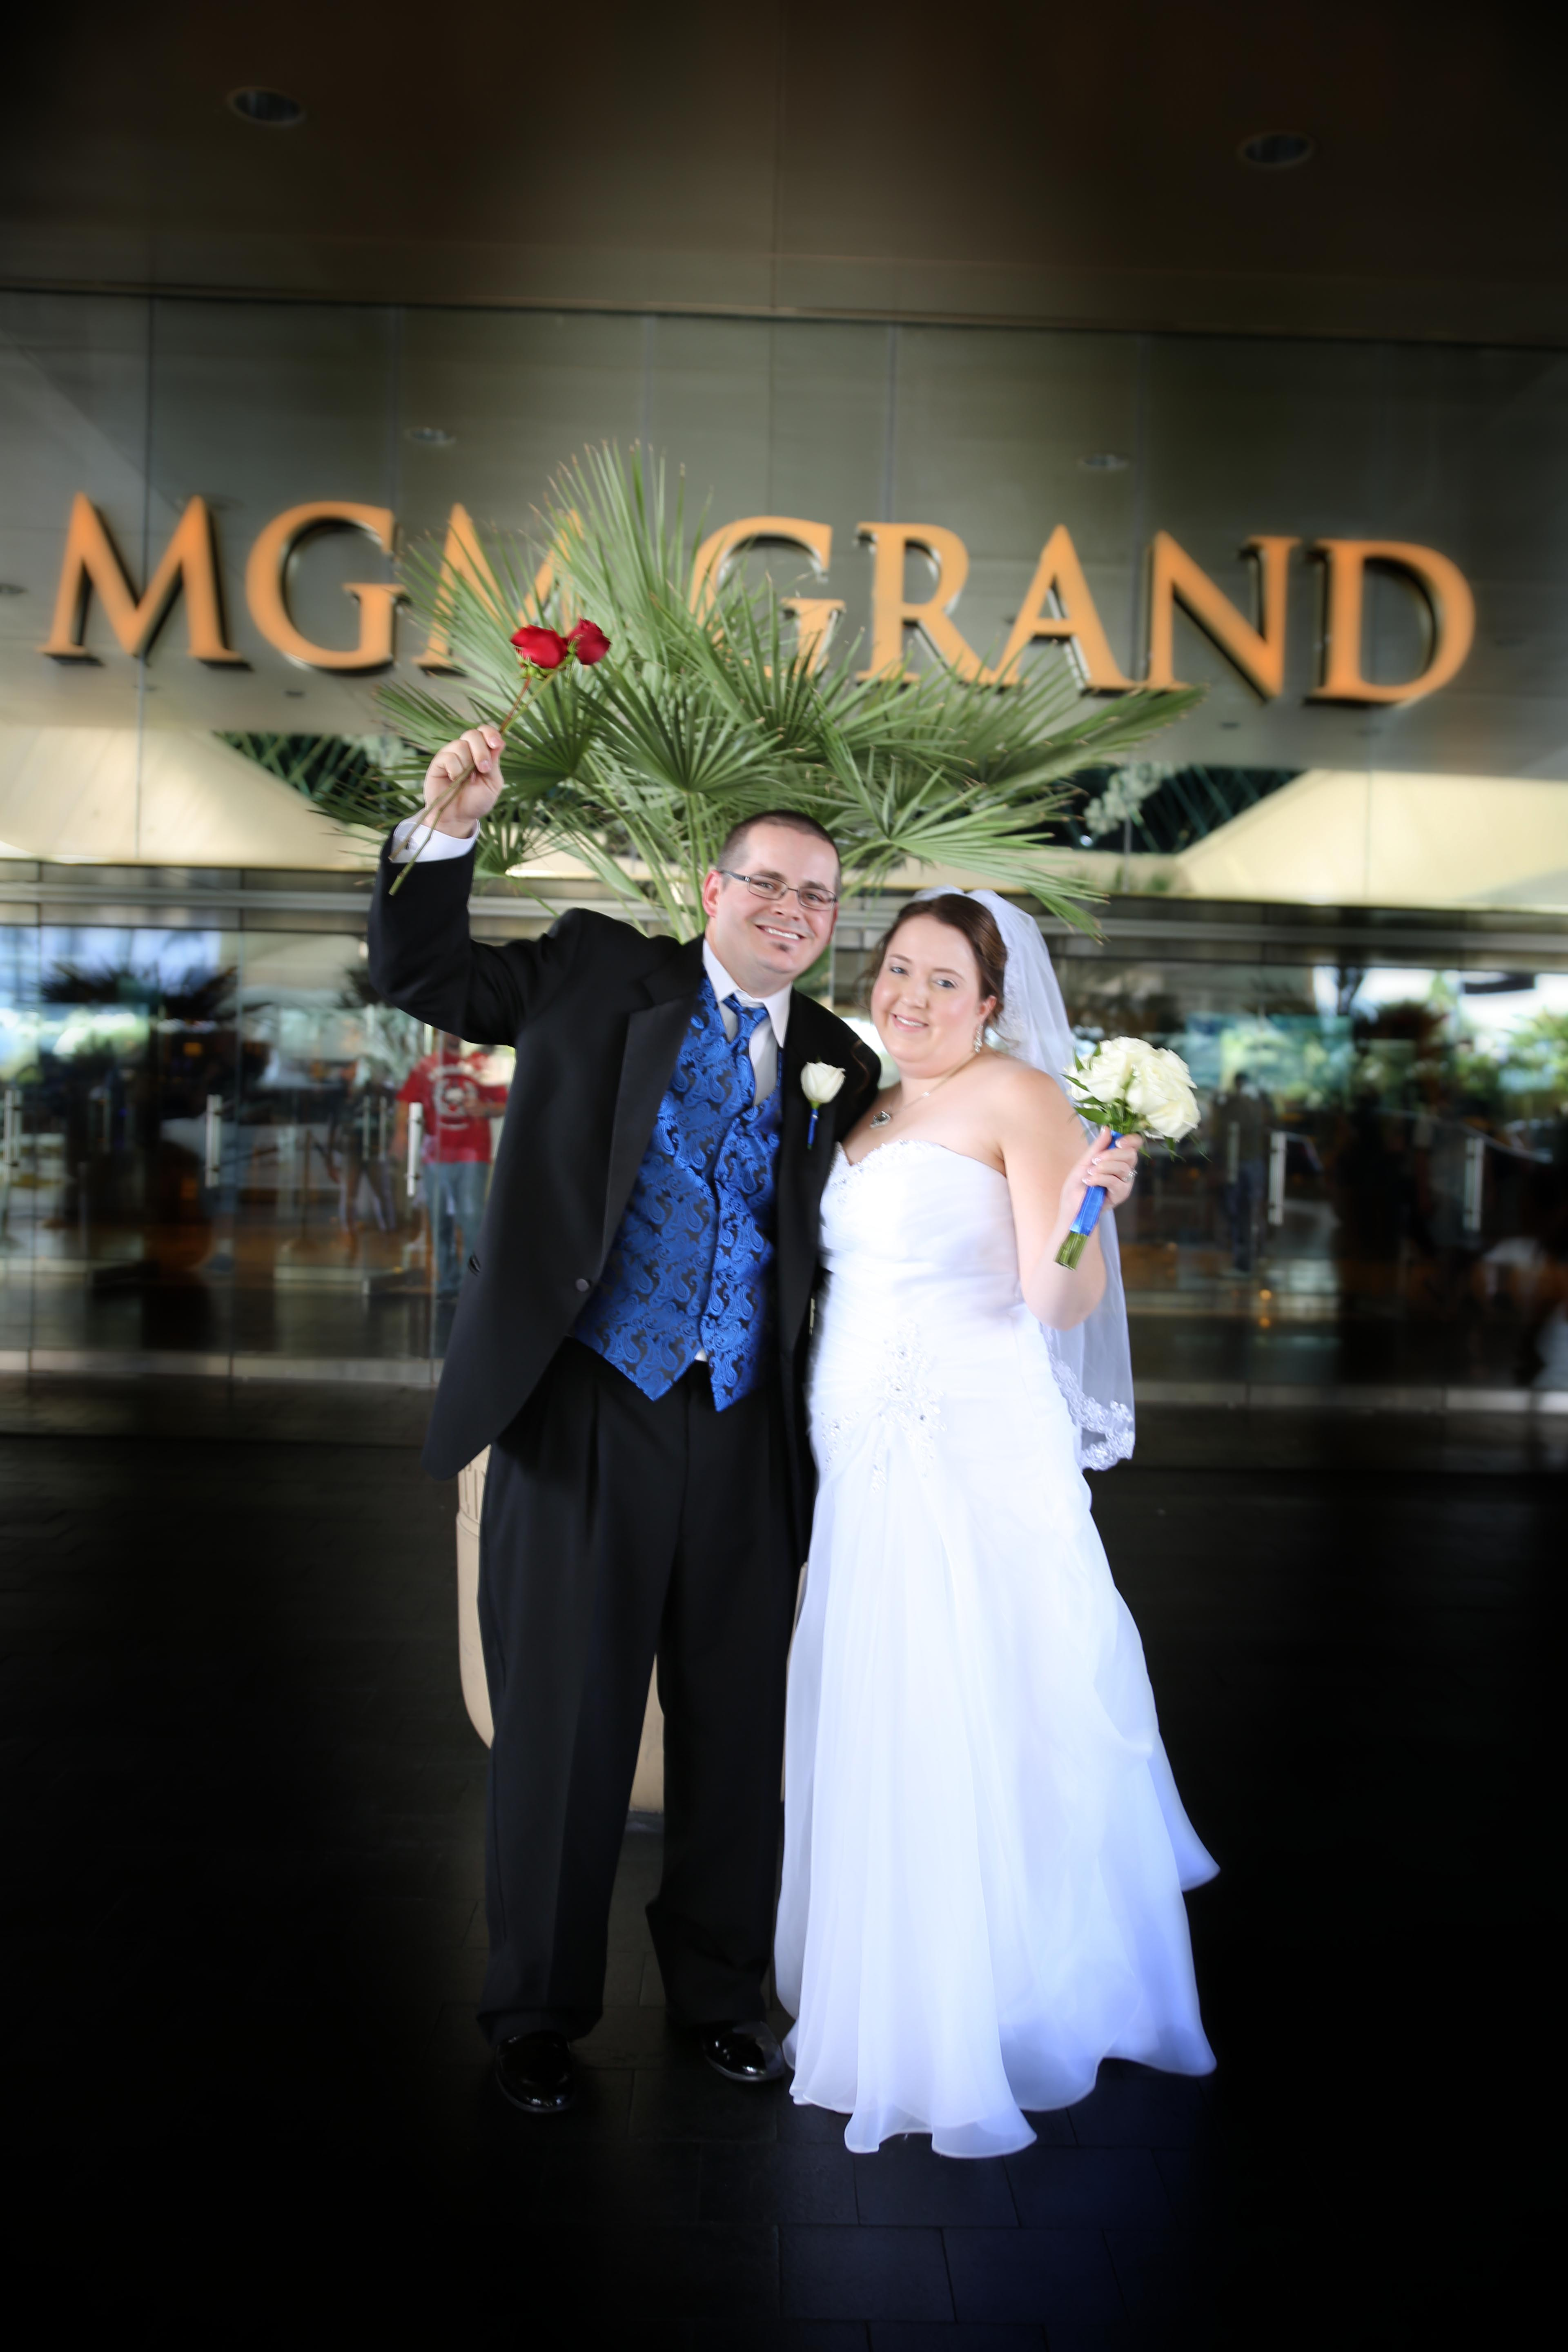 Las Vegas Wedding MGM